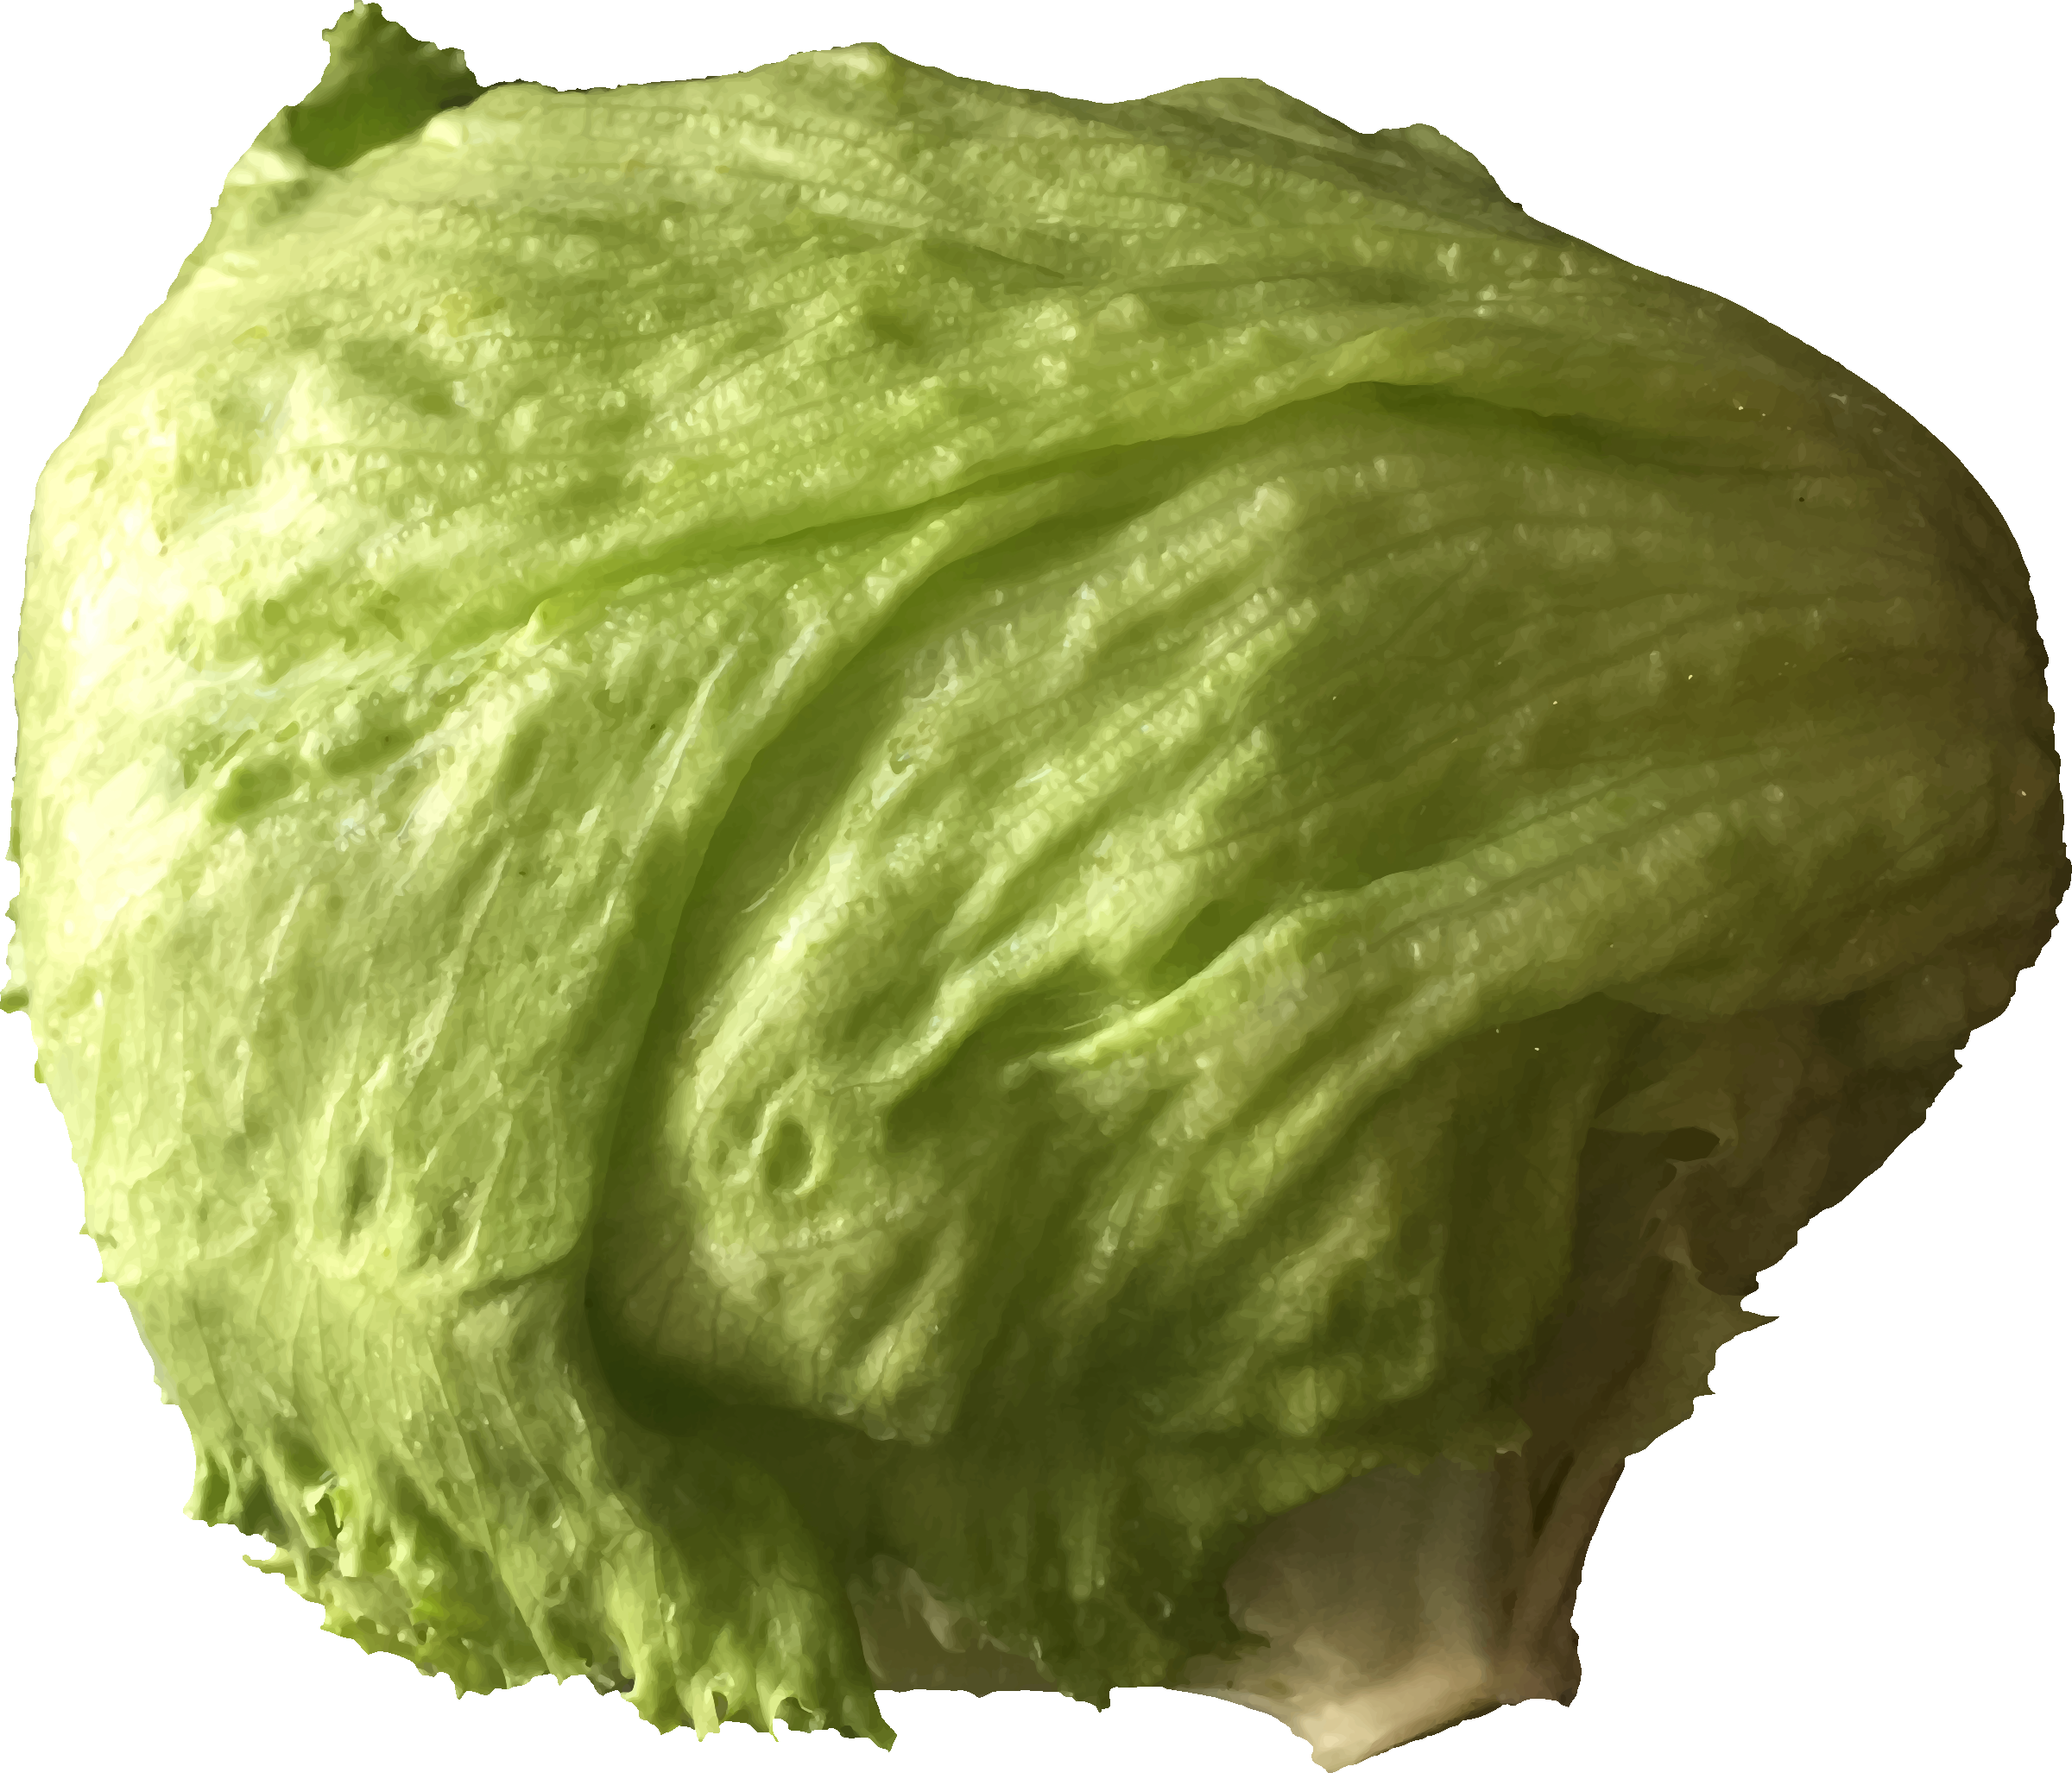 Lettuce by Firkin